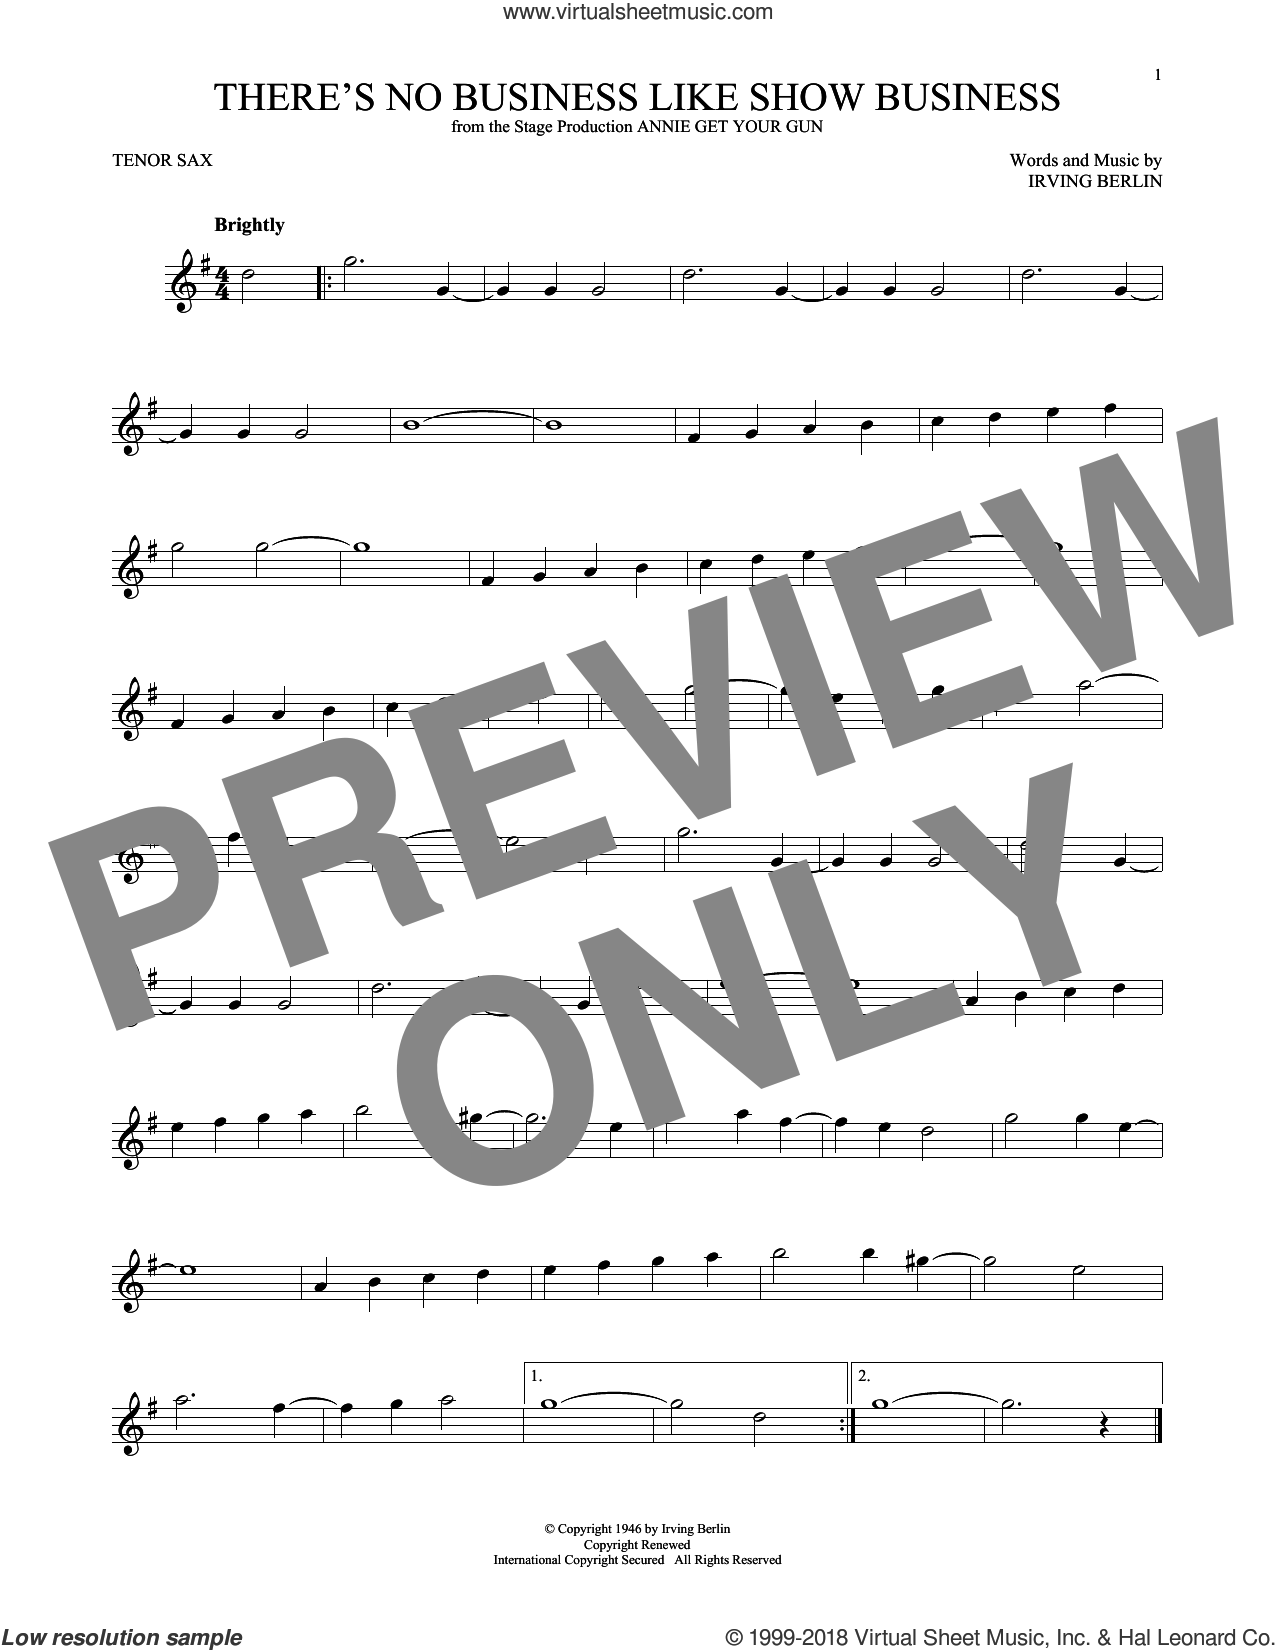 There's No Business Like Show Business sheet music for tenor saxophone solo by Irving Berlin, intermediate skill level